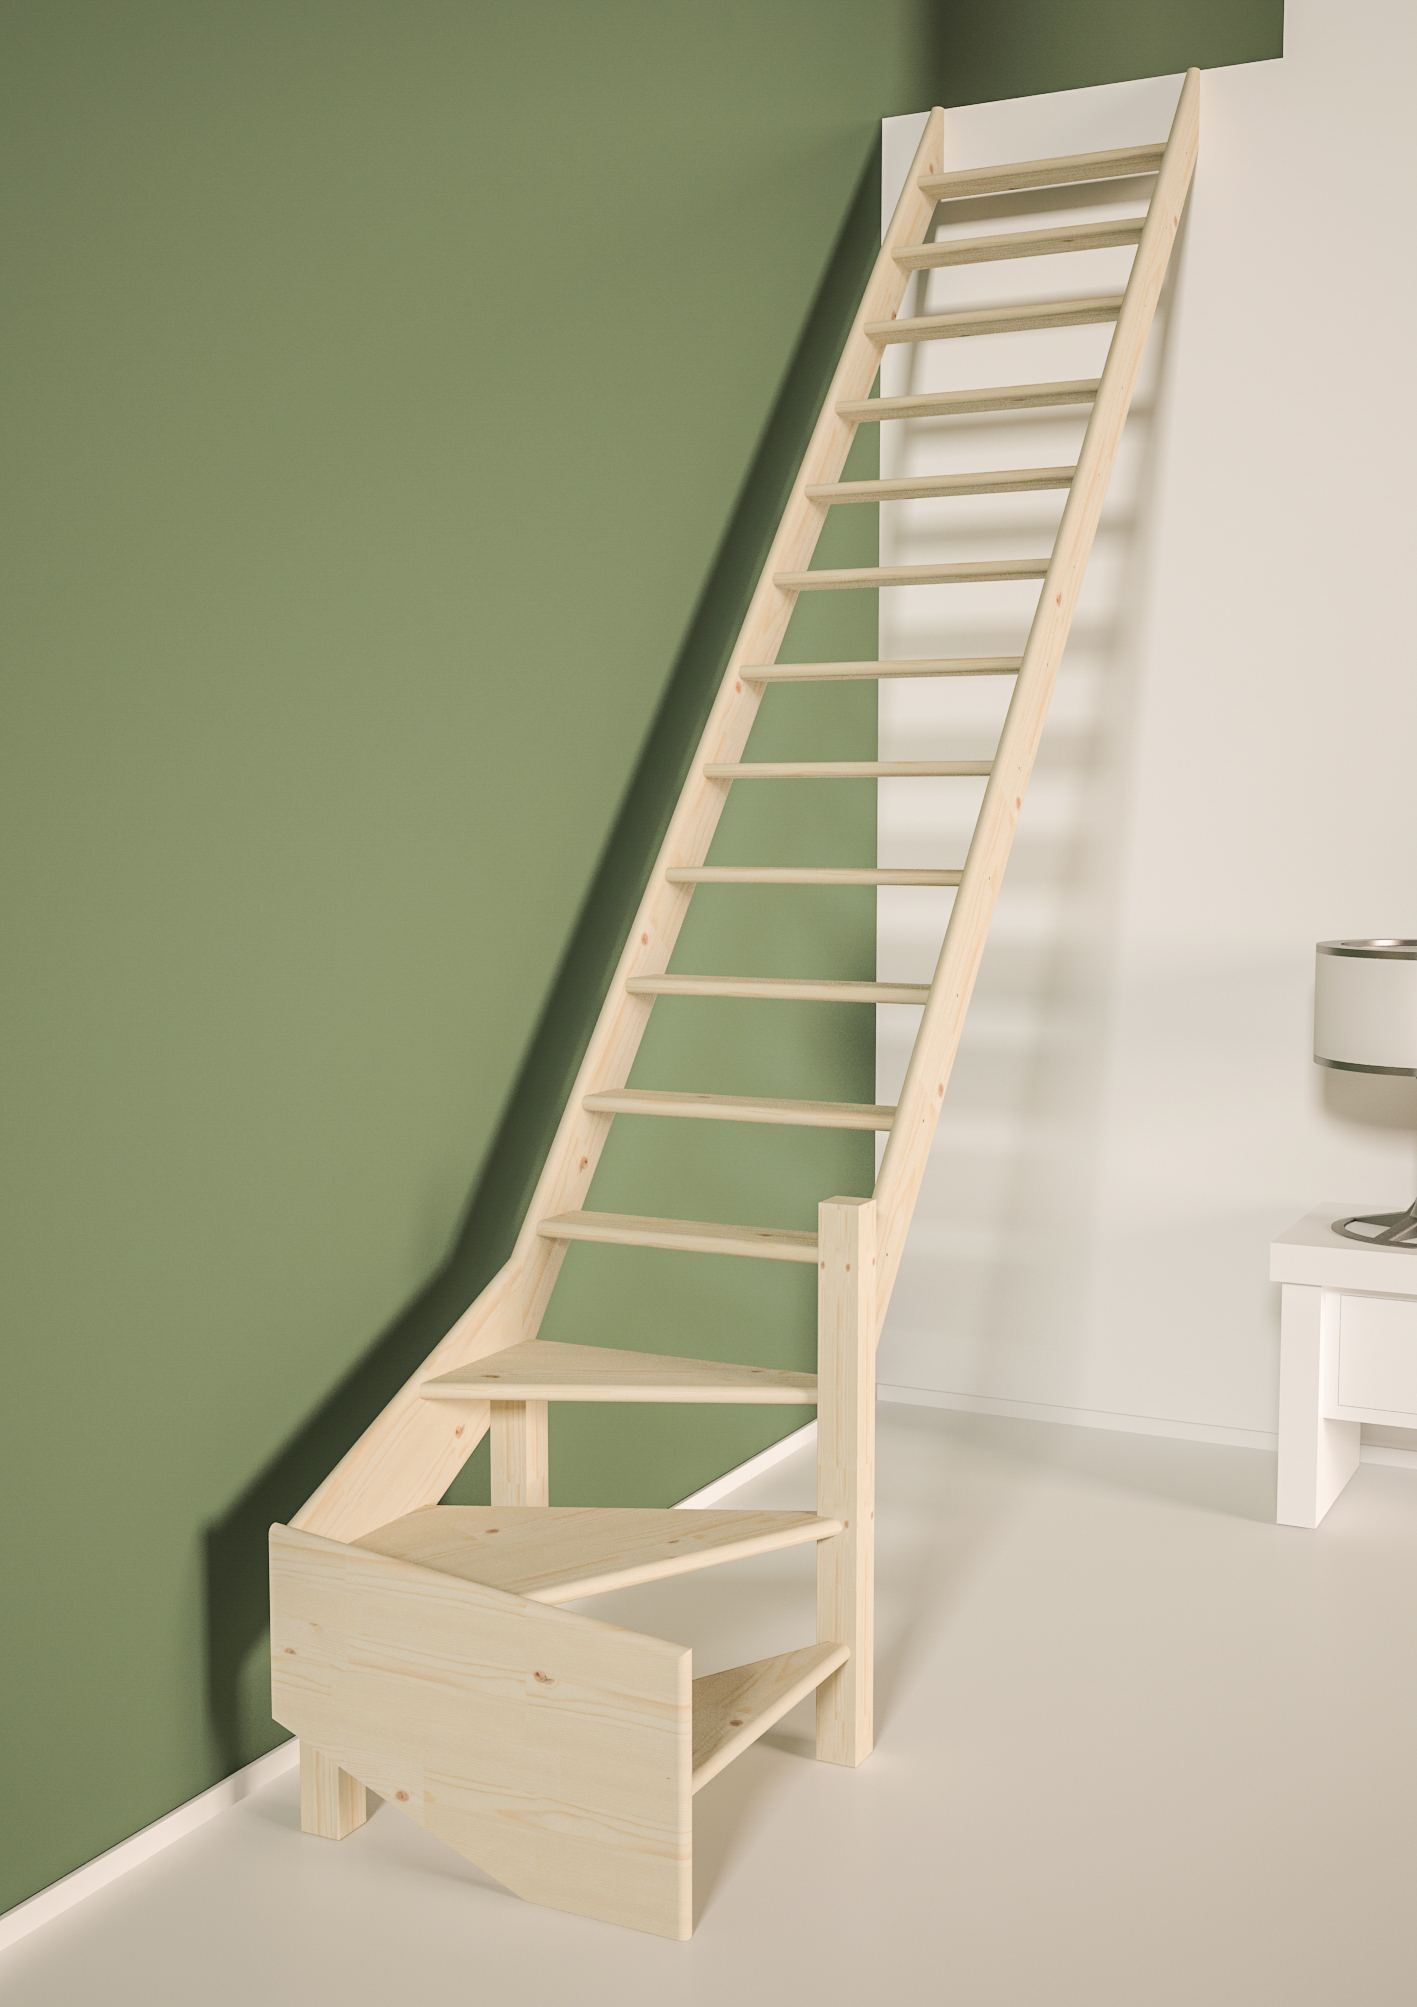 Cottage JUNIOR escalier 1/4 tournant